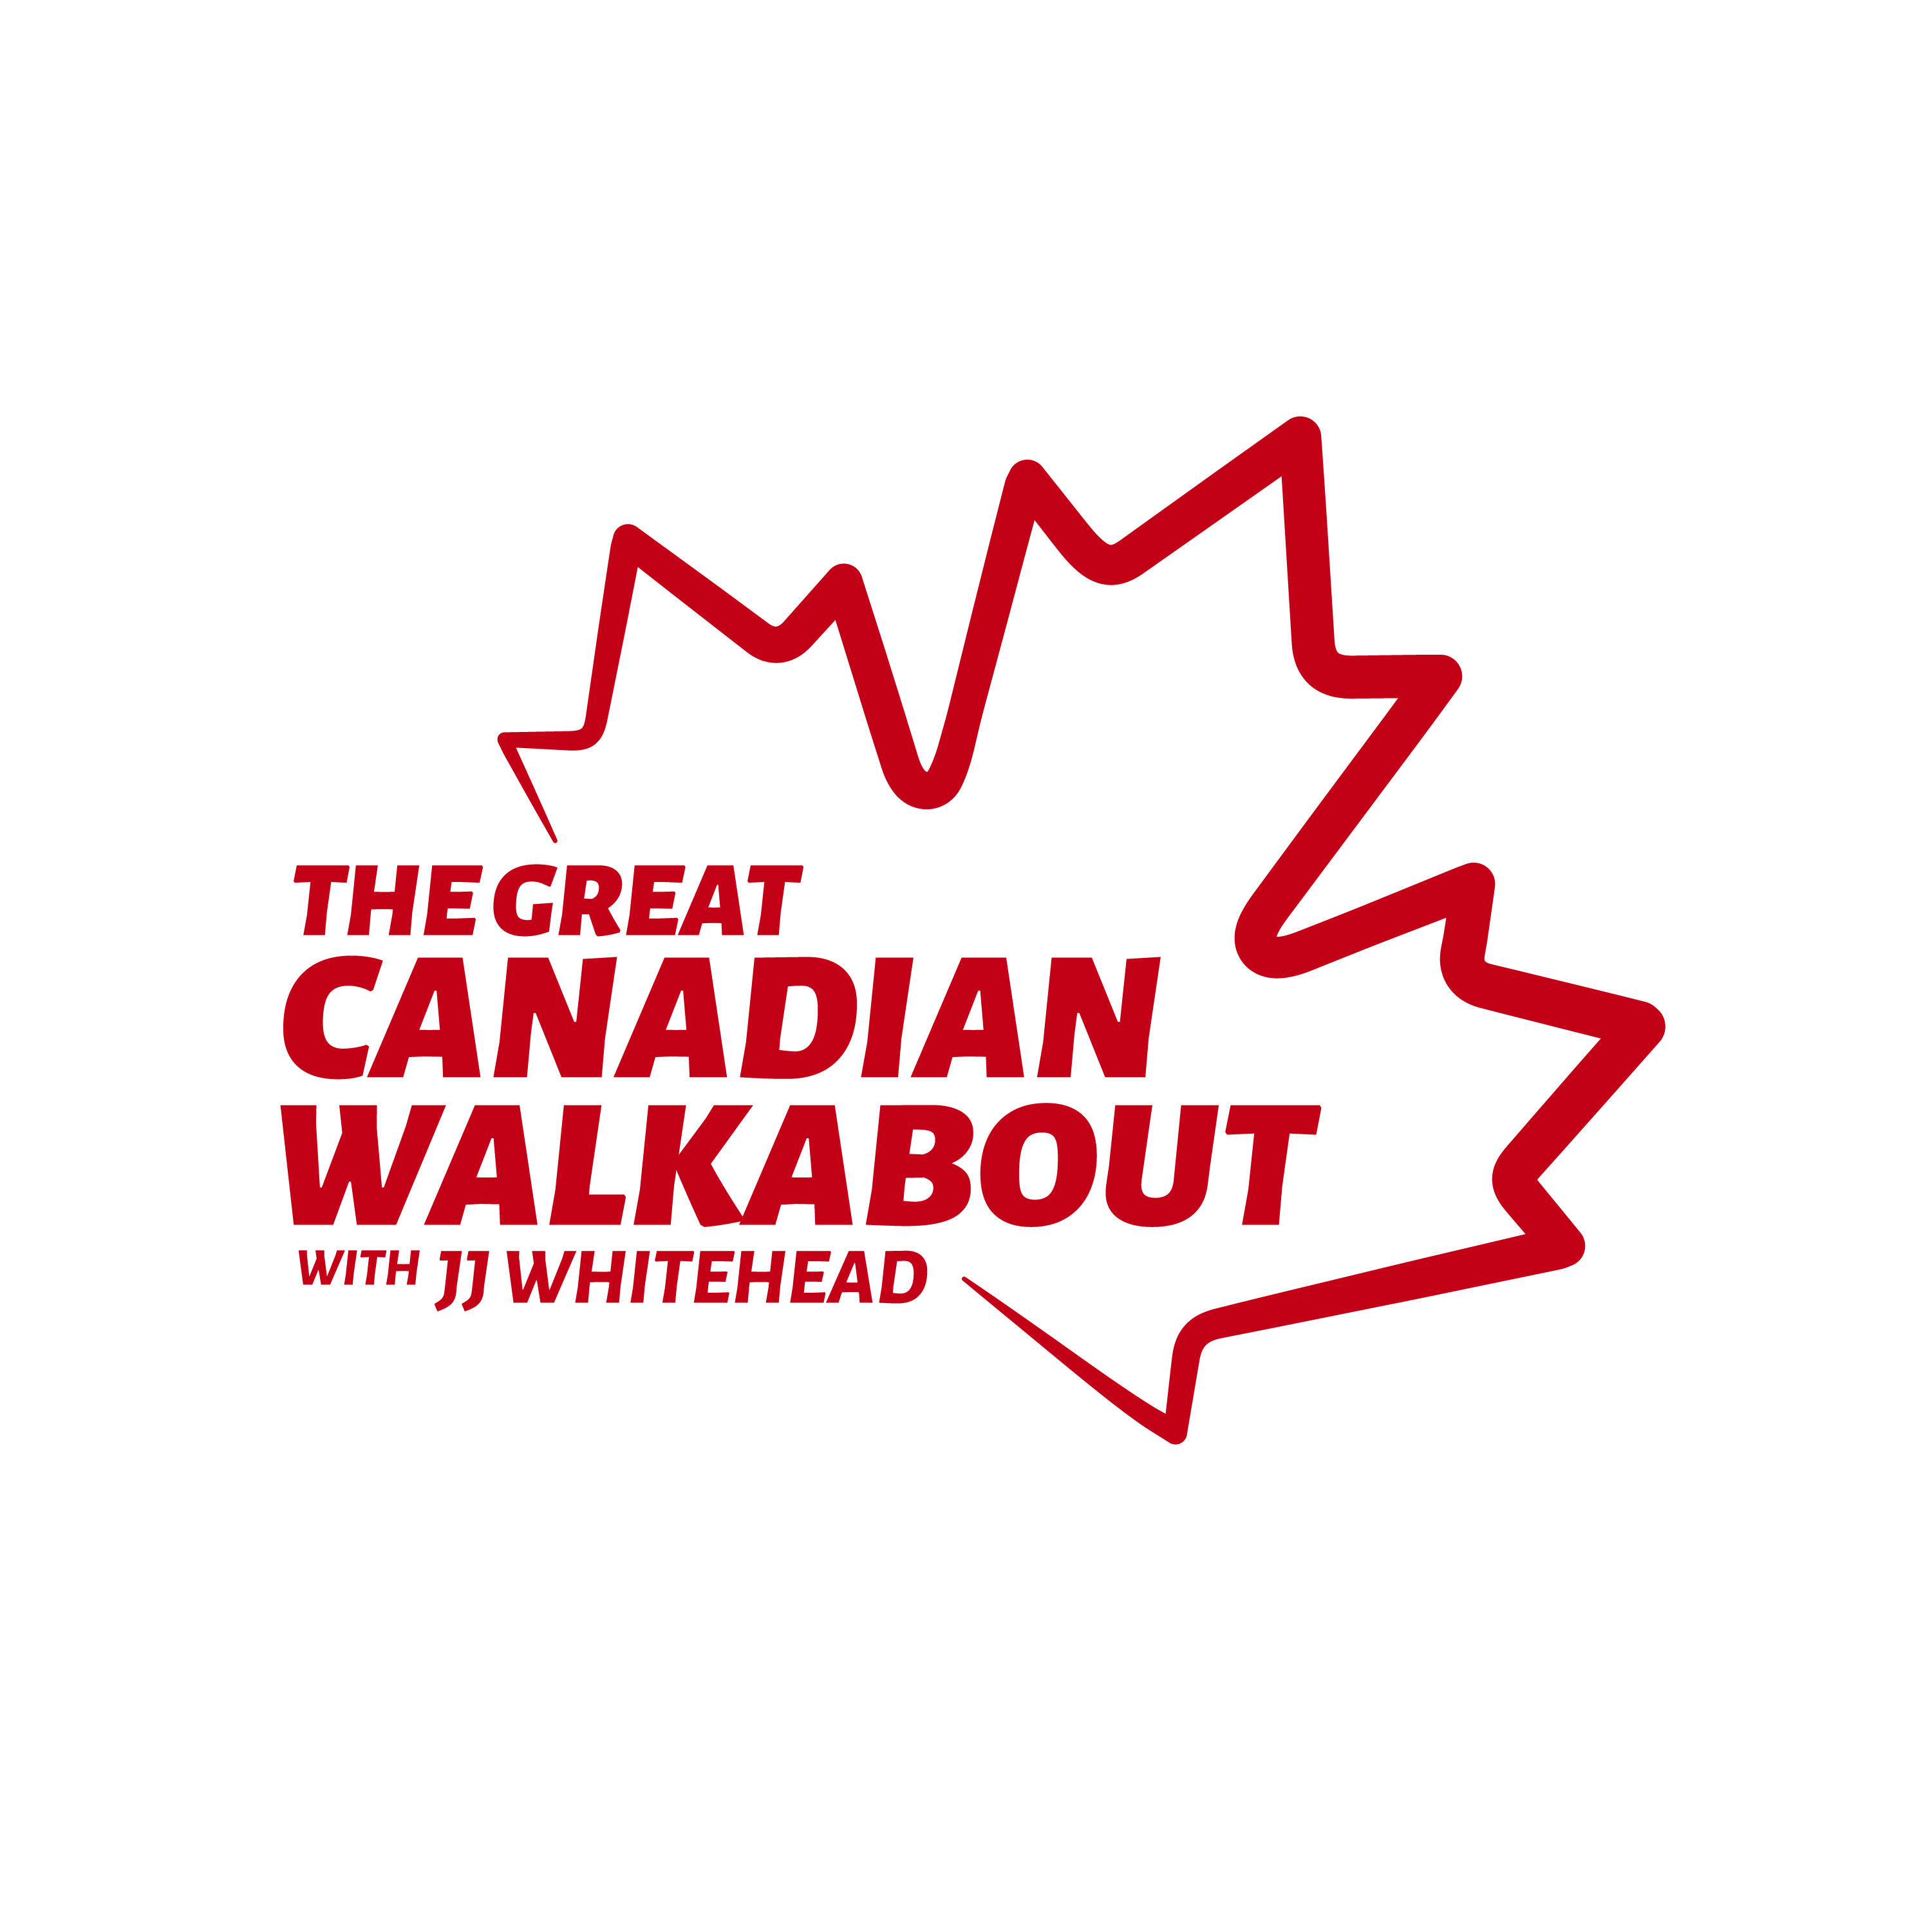 The Great Canadian Walkabout